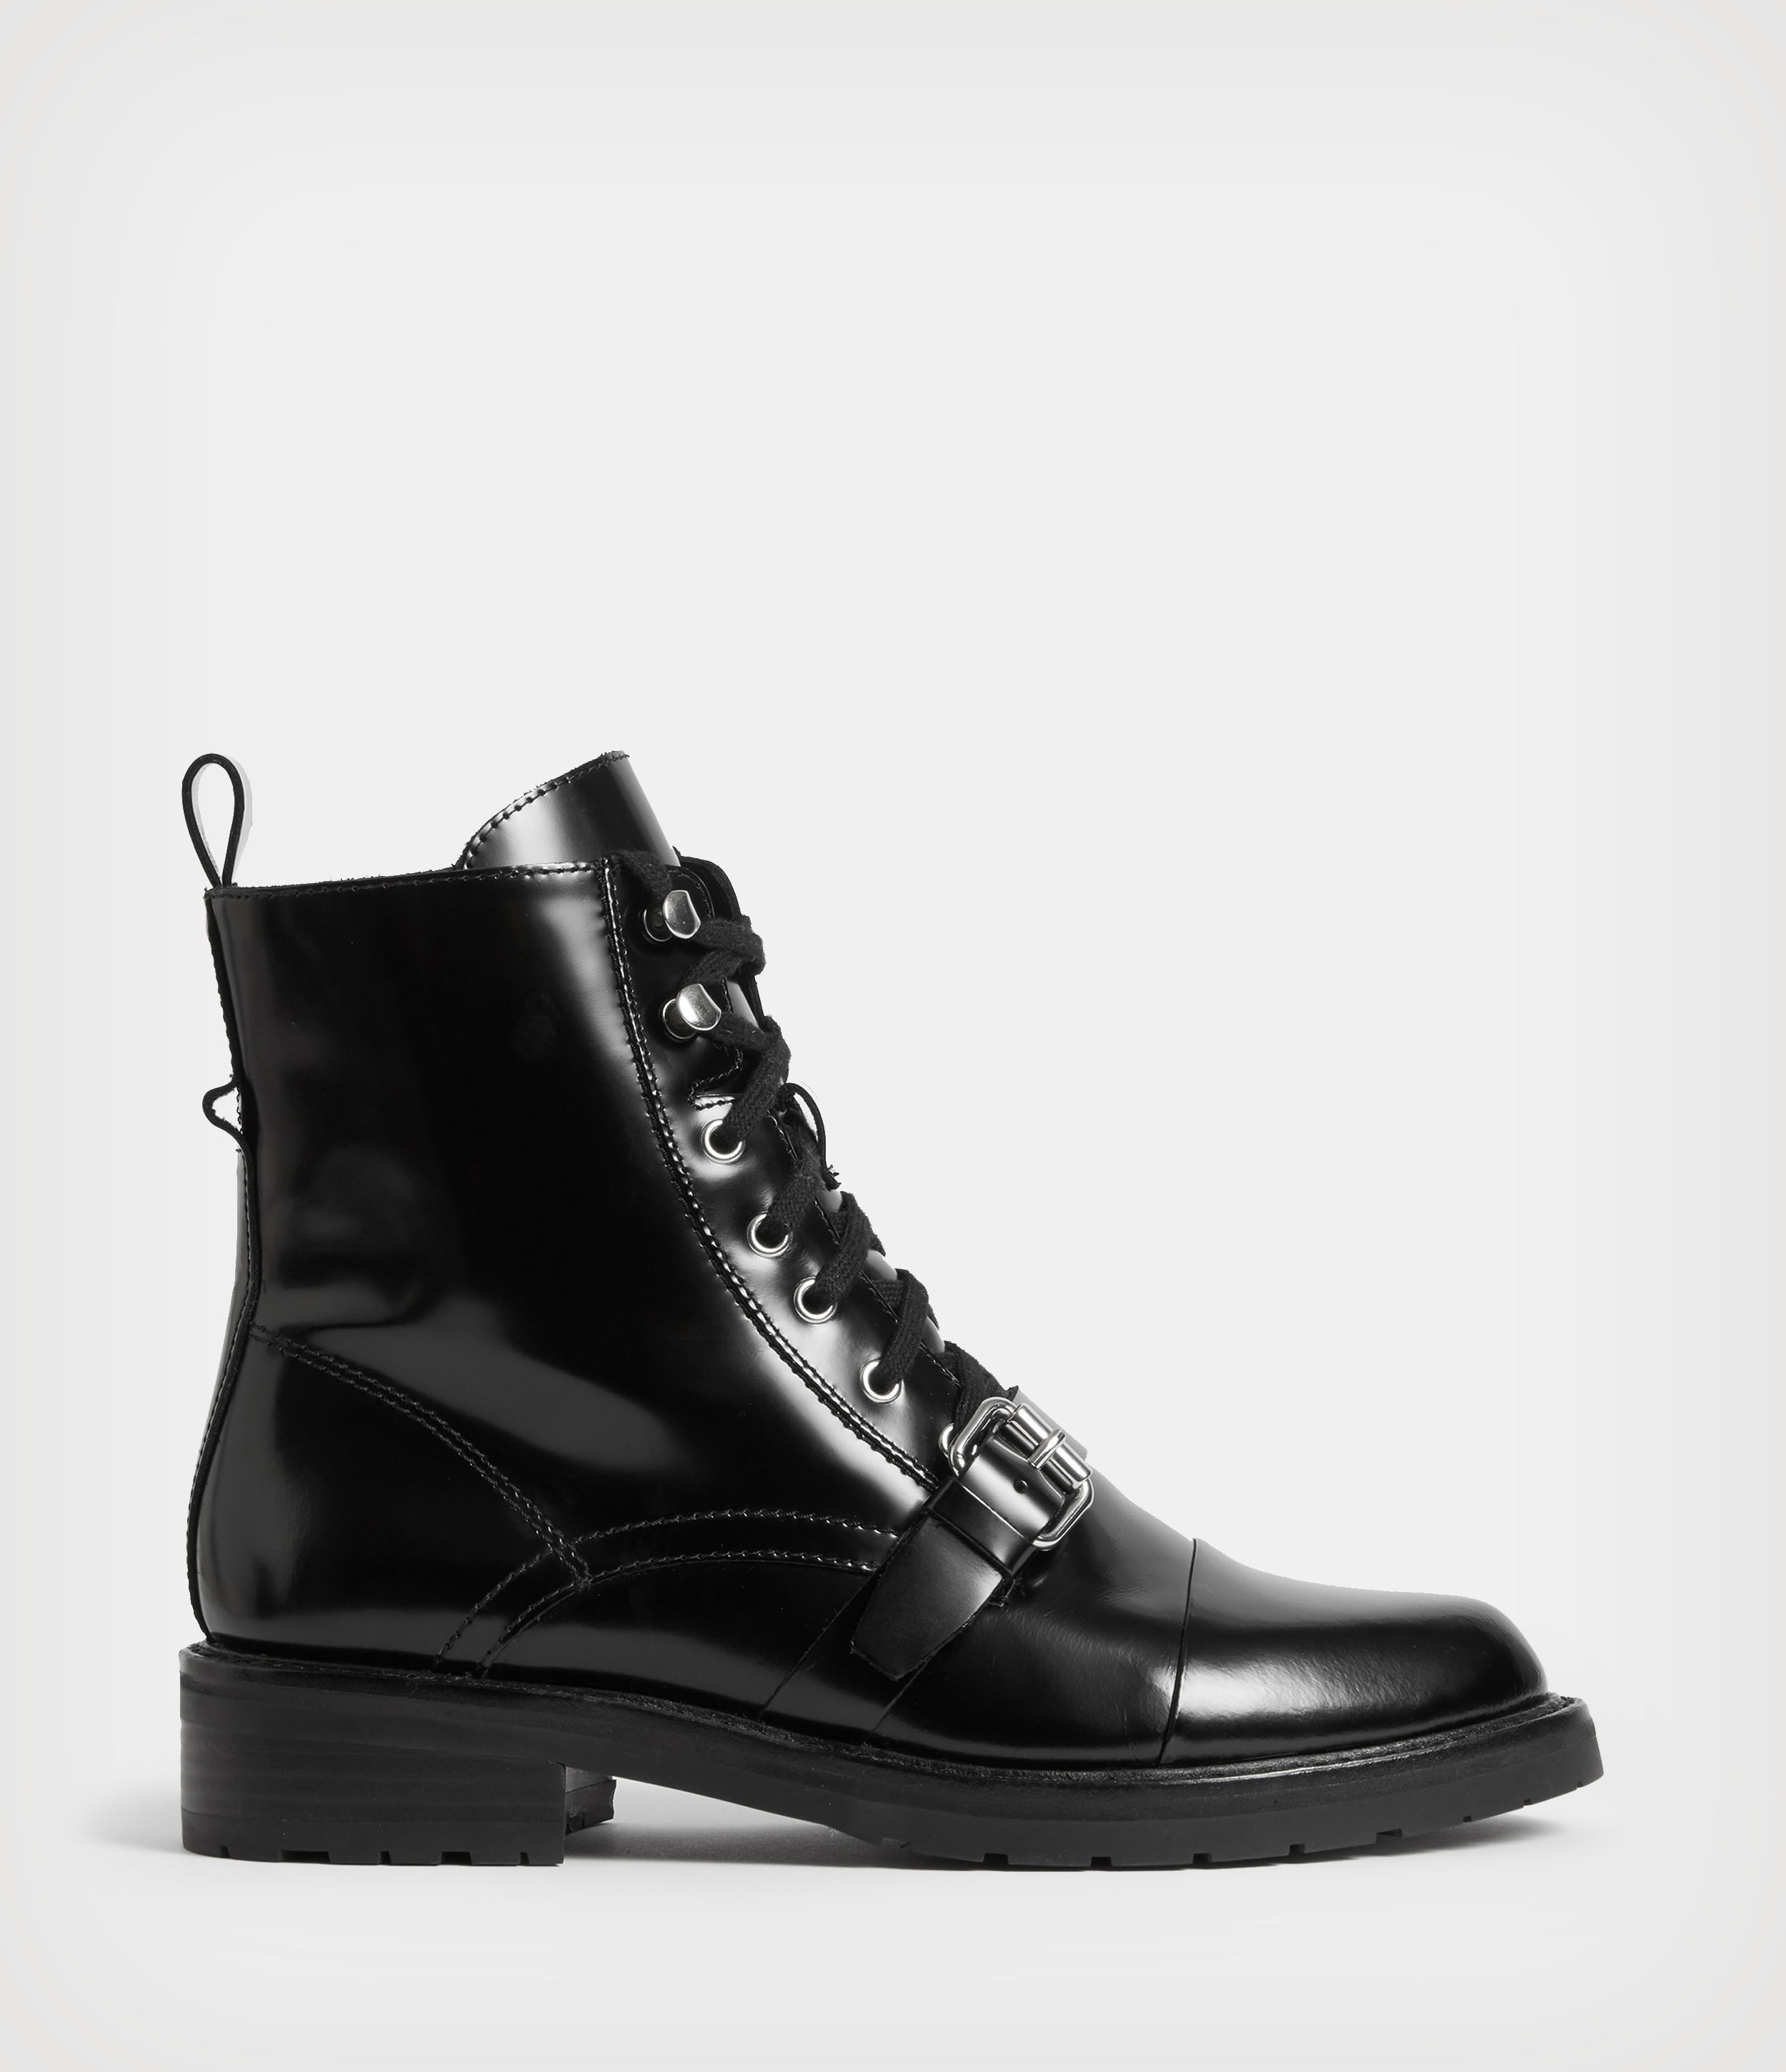 AllSaints Women's Leather Essential Donita Boots, Black, Size: UK 4/US 6/EU 37